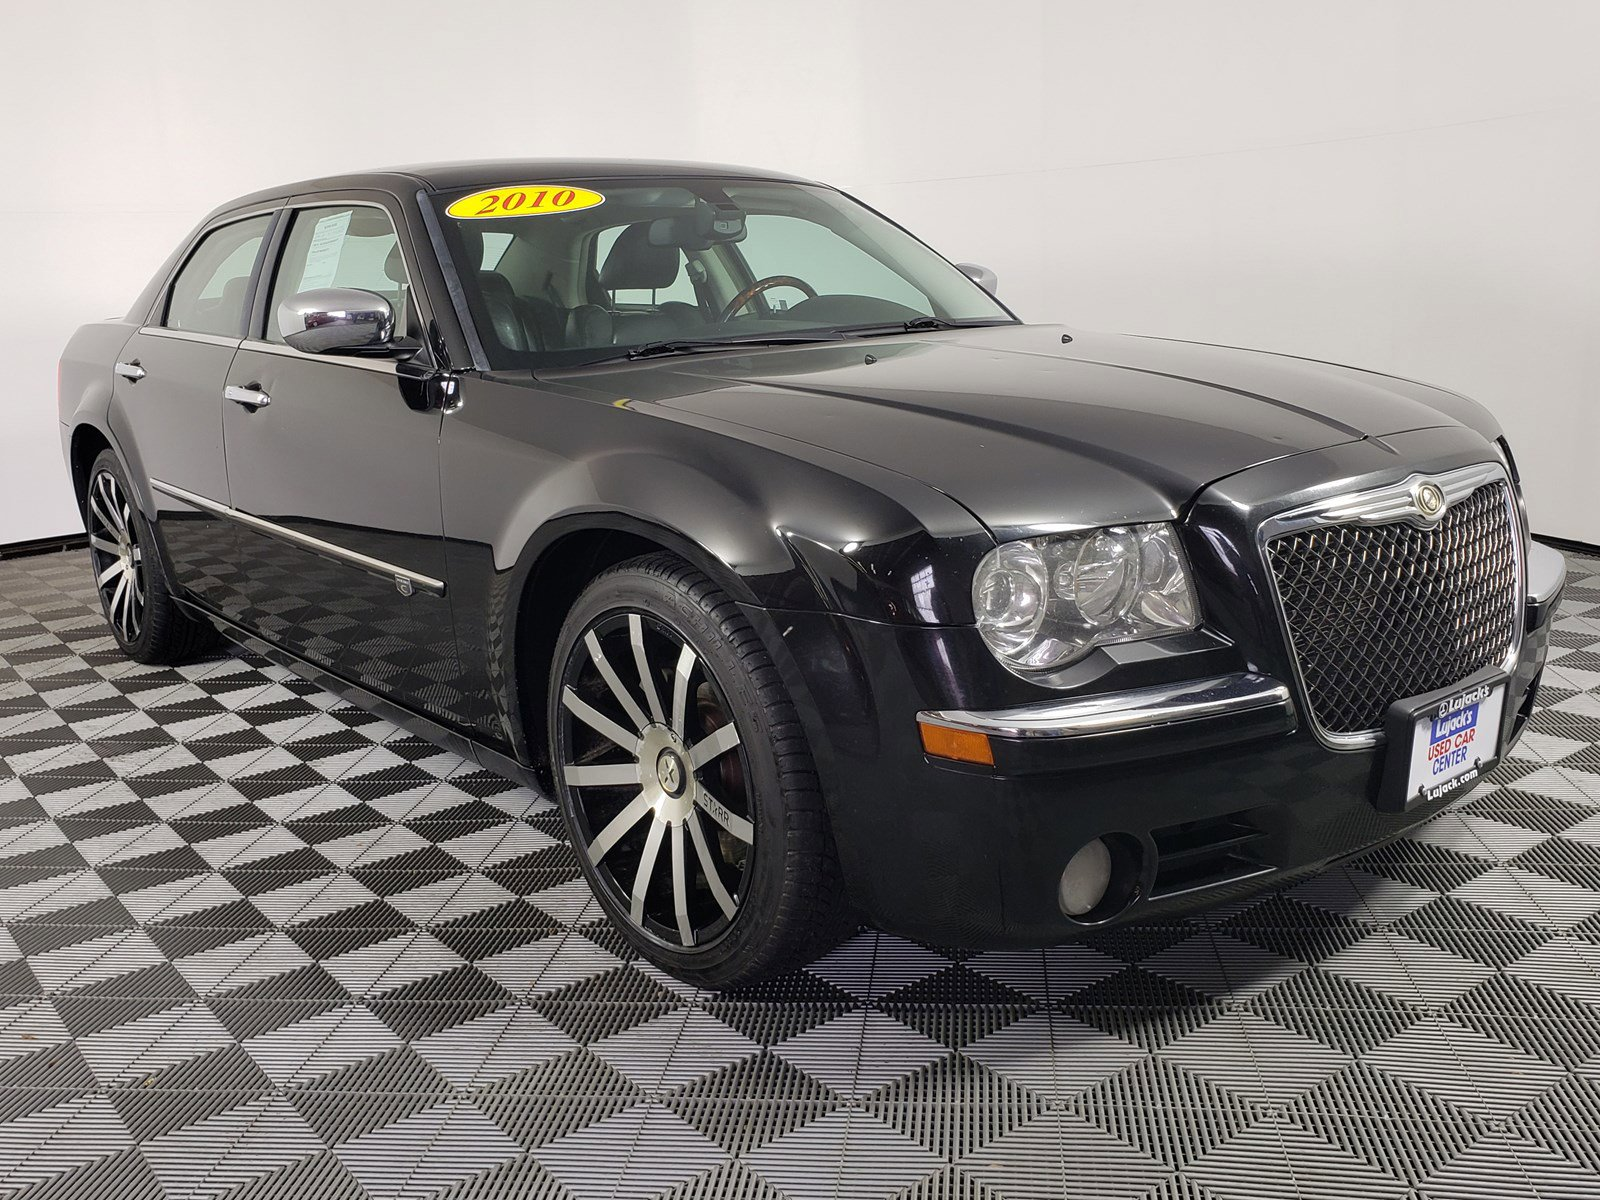 Pre-Owned 2010 Chrysler 300 300C Hemi